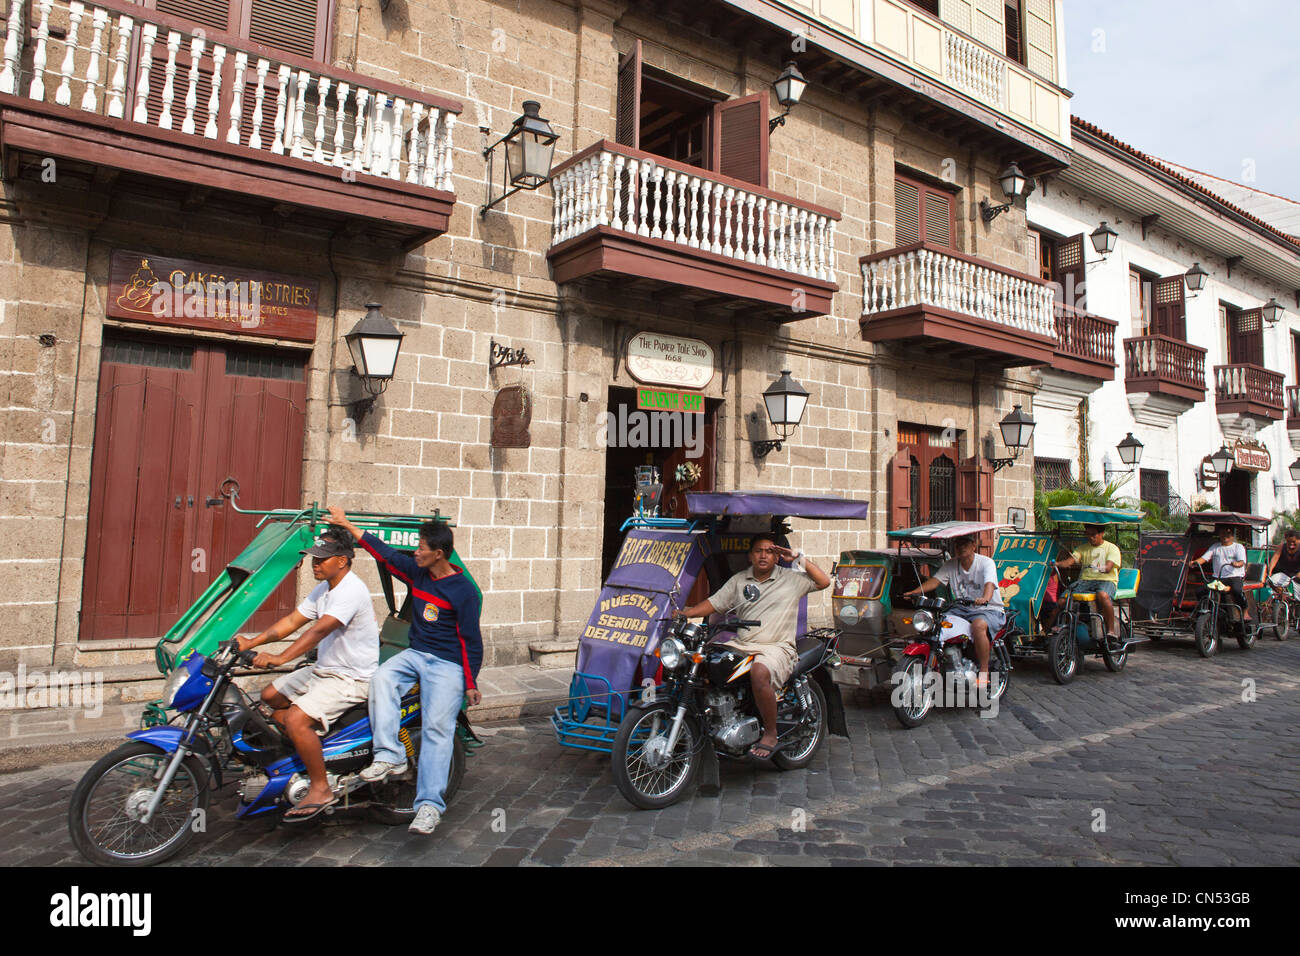 Philippines, Luzon island, Manila, Intramuros historic district, the motorbike taxi - Stock Image